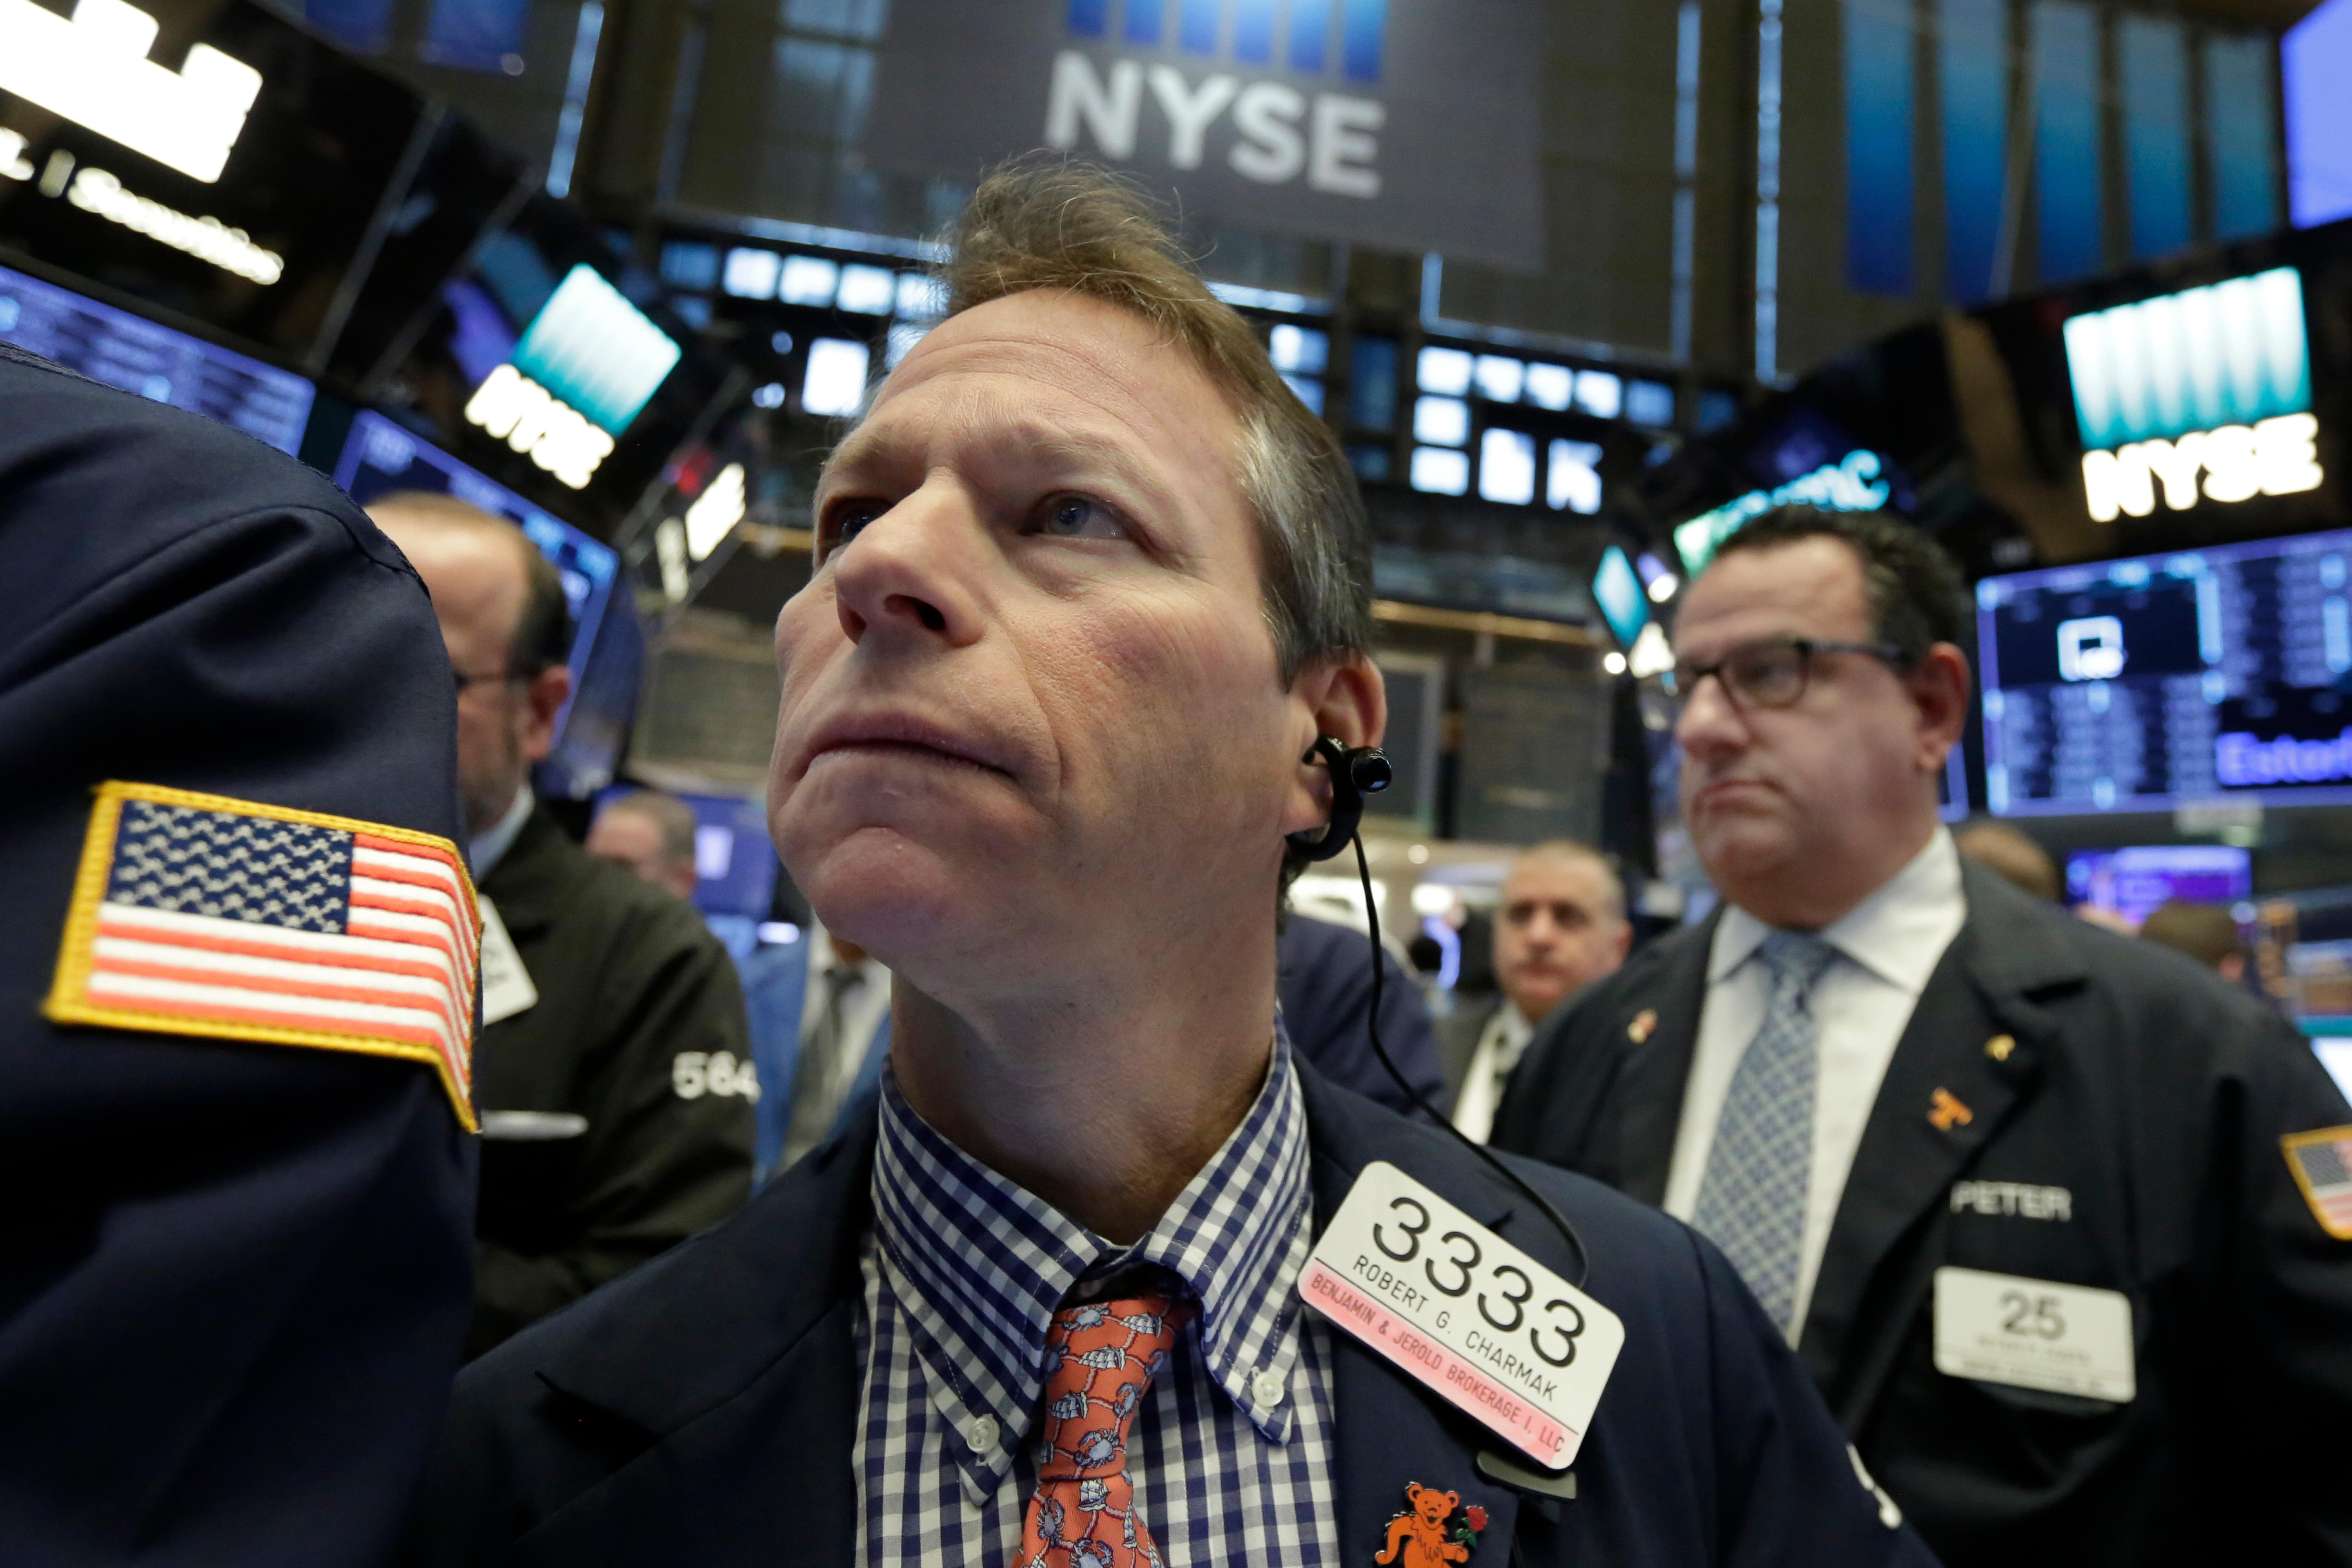 Trader Robert Charmak, center, works on the floor of the New York Stock Exchange, Friday, Feb. 2, 2018. Technology companies were leading stocks broadly lower in early trading, extending the market's slide into a second day. (AP Photo/Richard Drew)